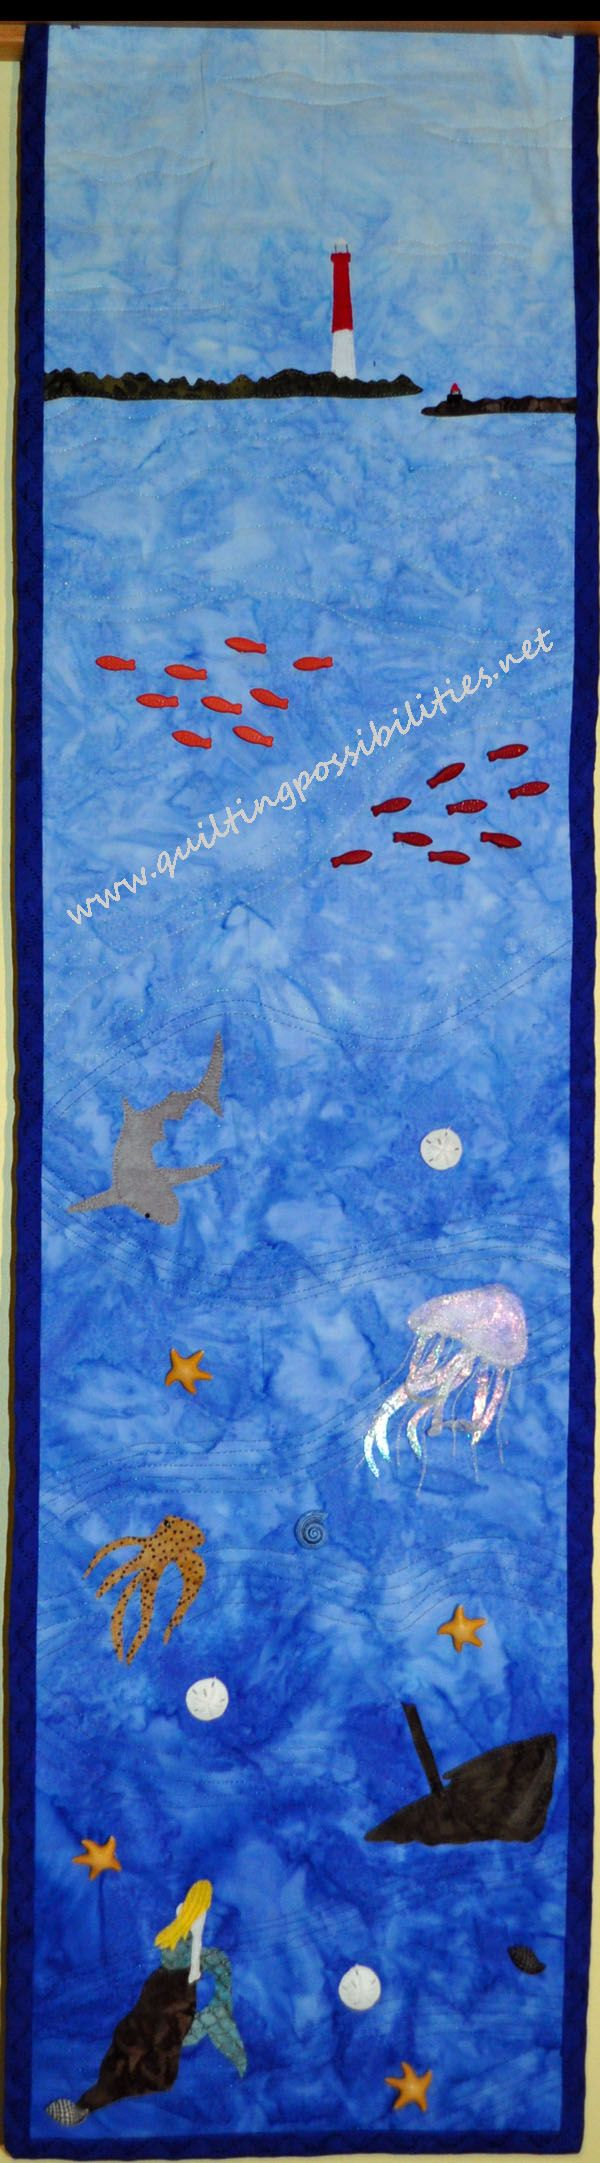 Pin by Karen Greenhood on Row by Row Experience/ 2015   Pinterest : quilting possibilities - Adamdwight.com